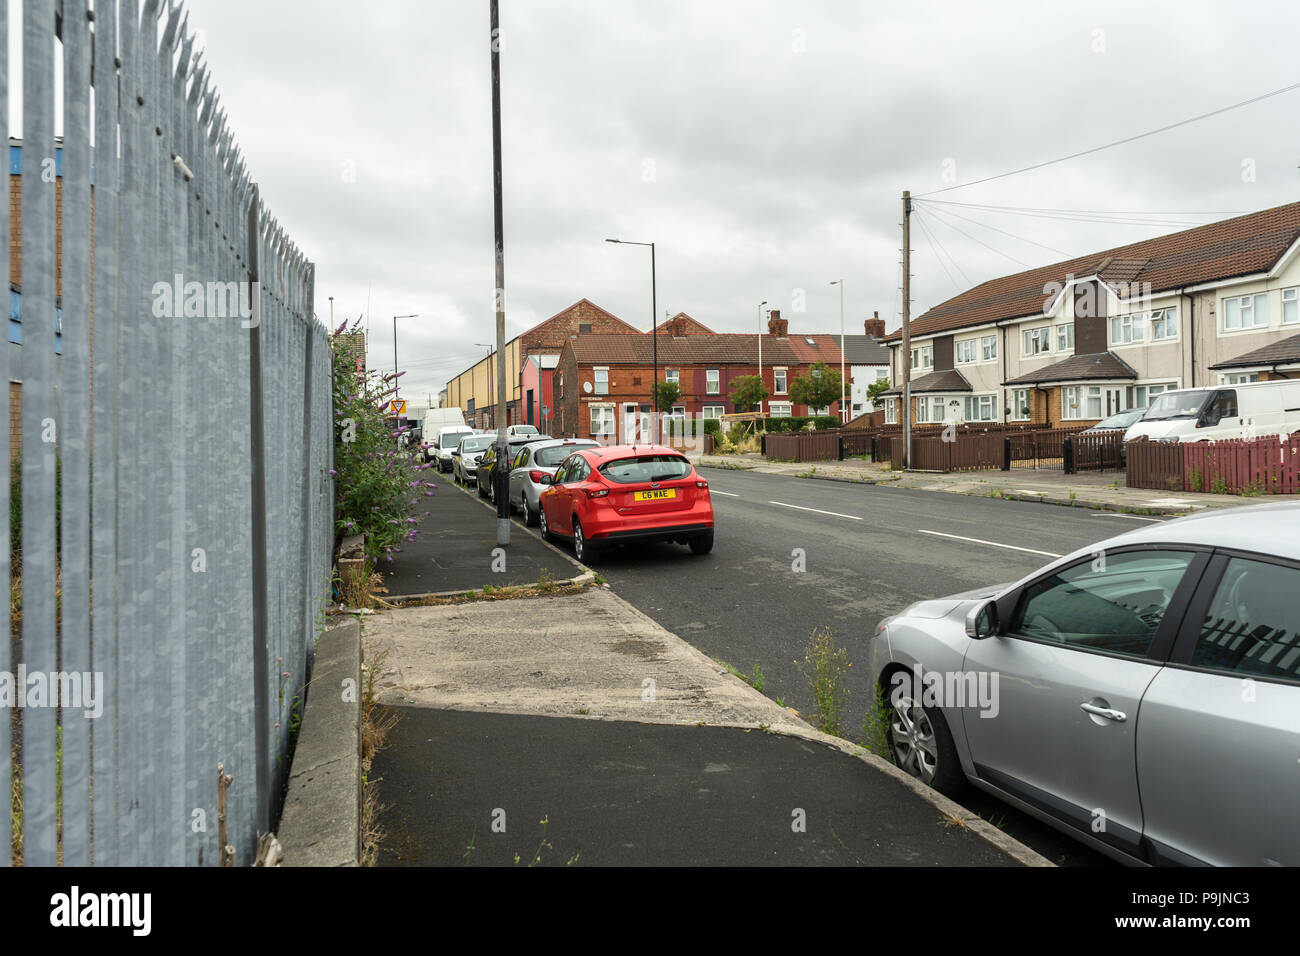 Street view of council houses in Birkenhead, Wirral, UK, Street scene with cars and industrial estate - Stock Image